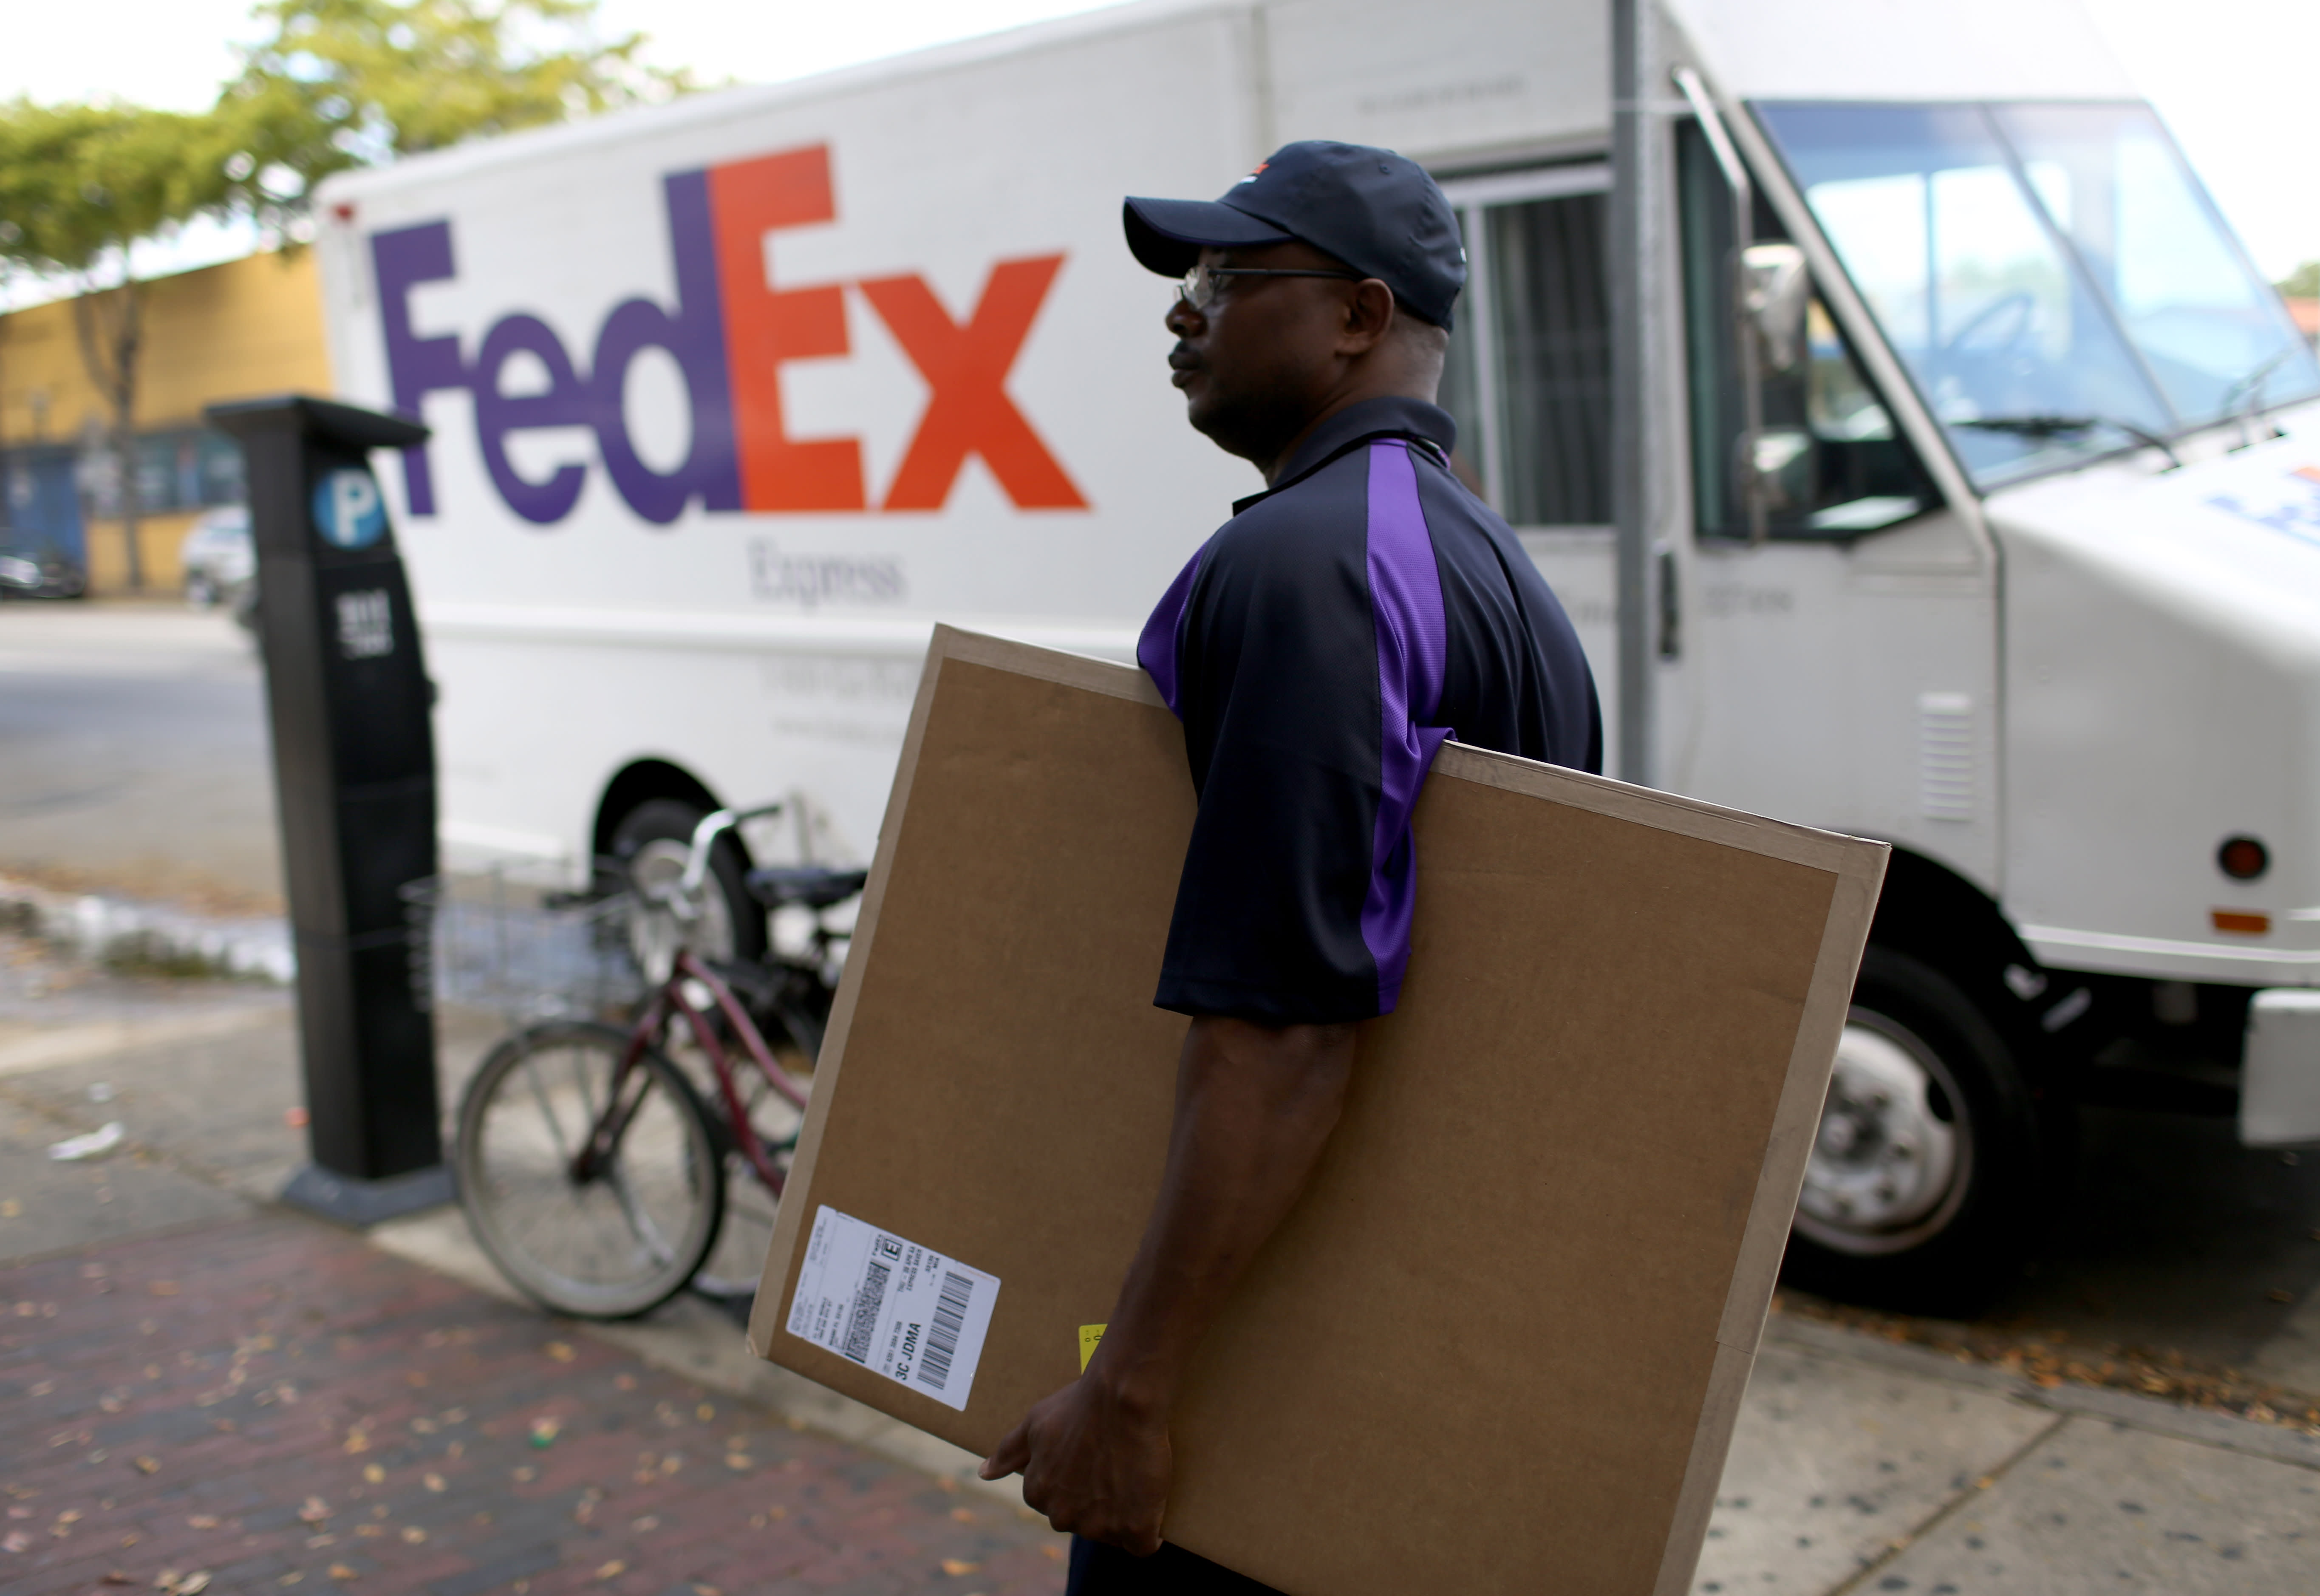 Here are the biggest analyst calls of the day: FedEx, Roku, American Eagle Outfitters & more